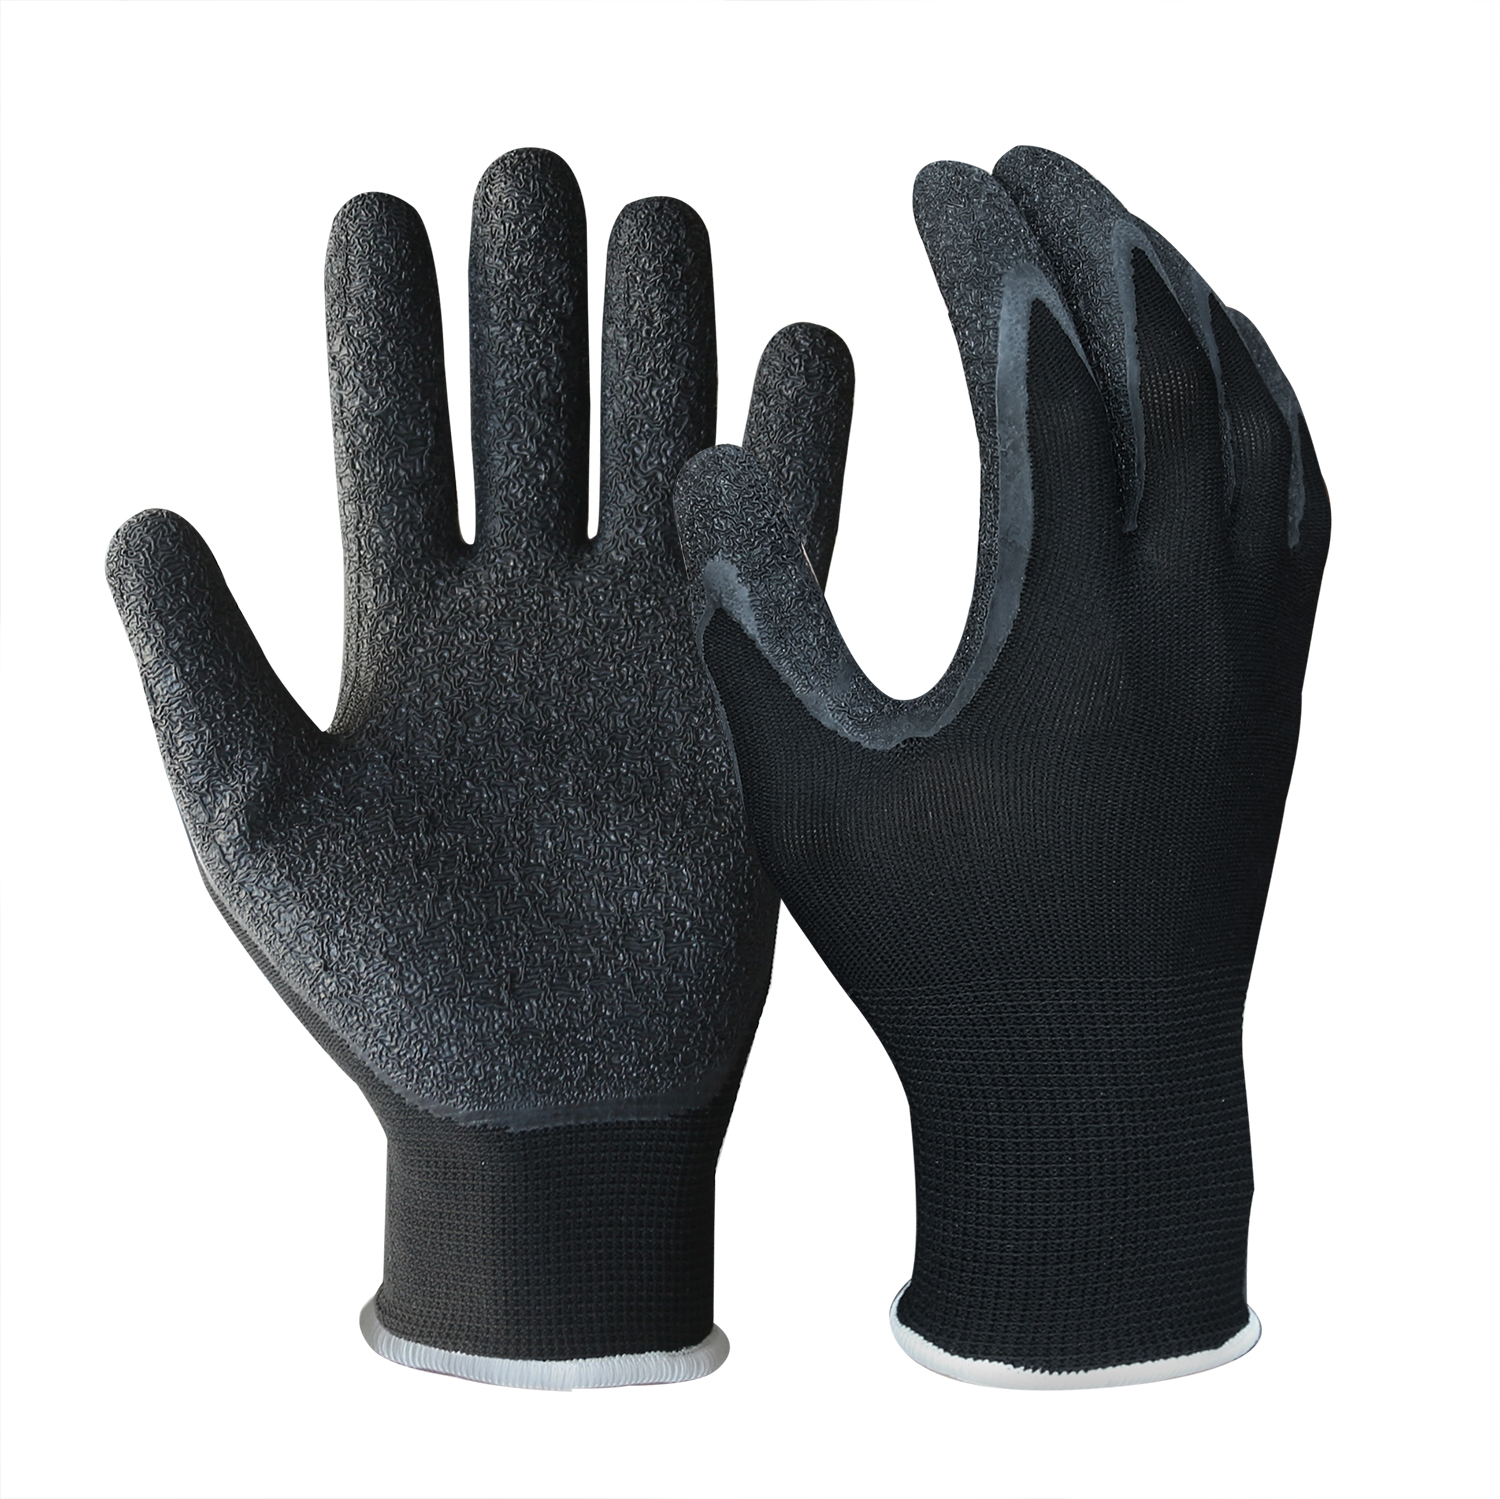 Latex Coated String Knit Safety Work Gloves/LCG-015